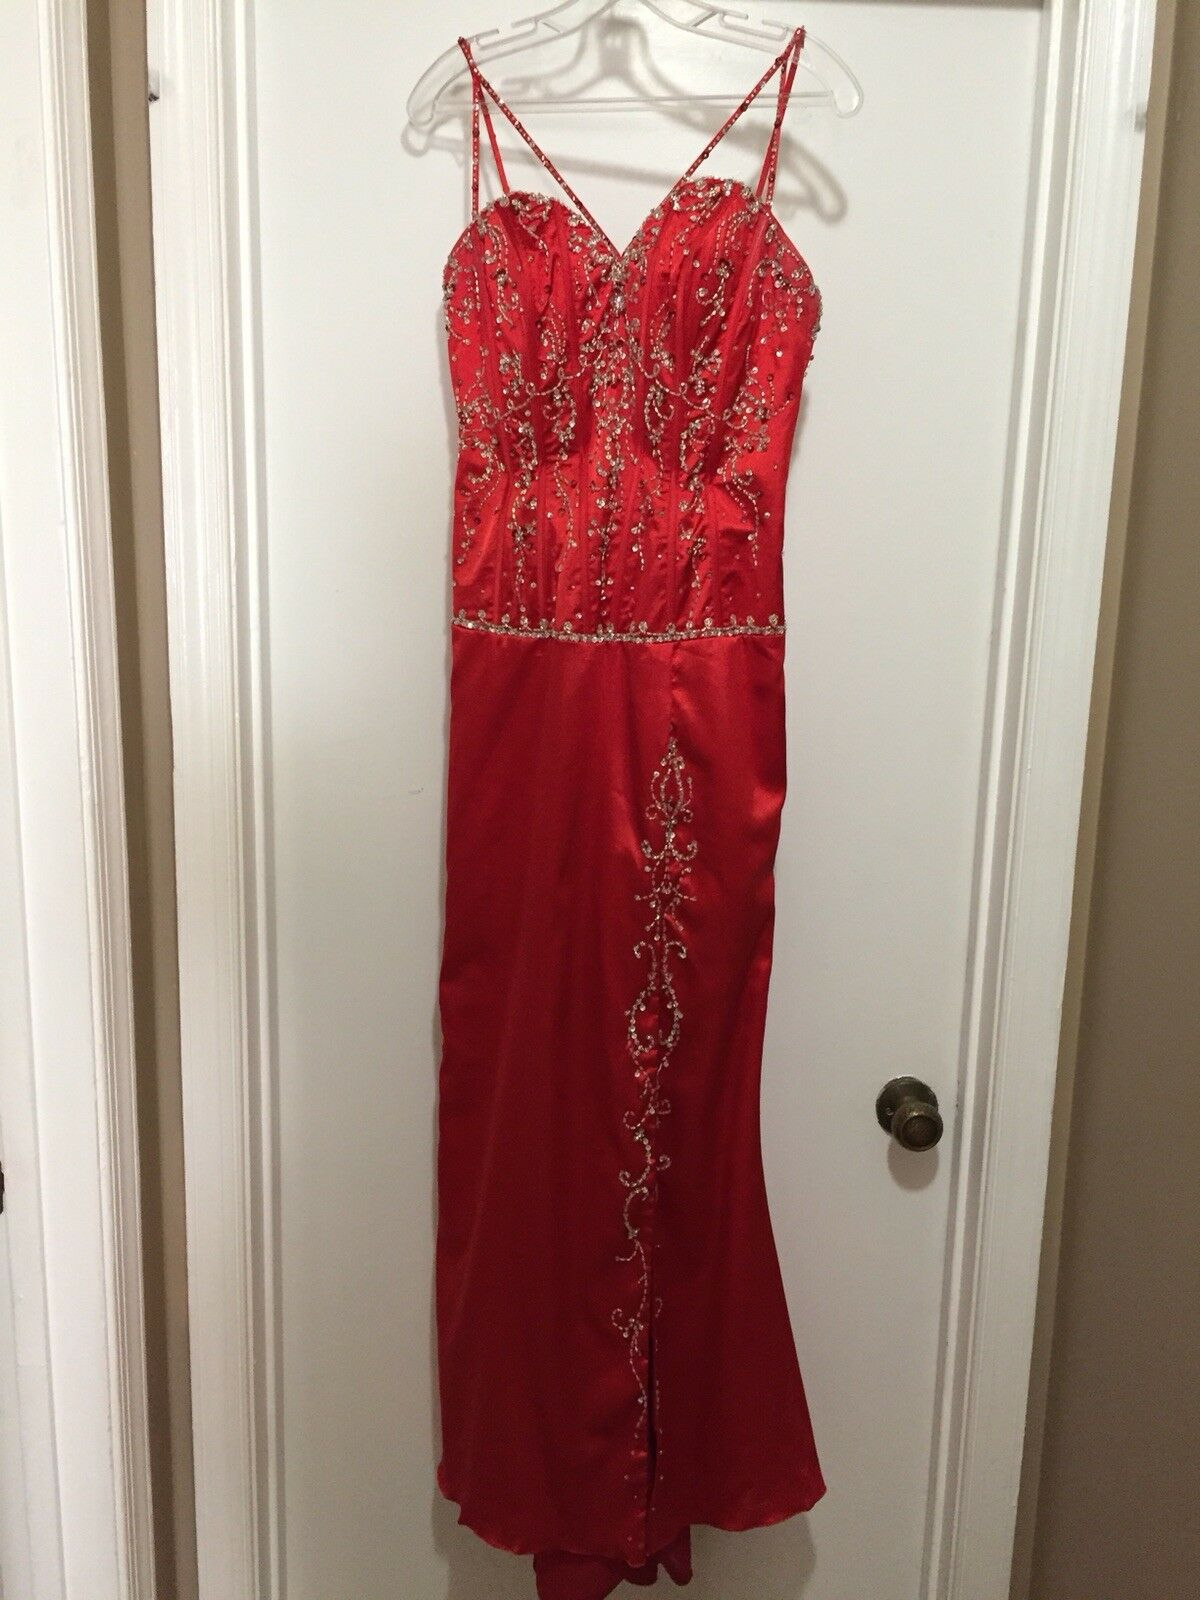 Red Prom Dress Size 9/10 Mori Lee by Madeline Gardner (Returns accepted)